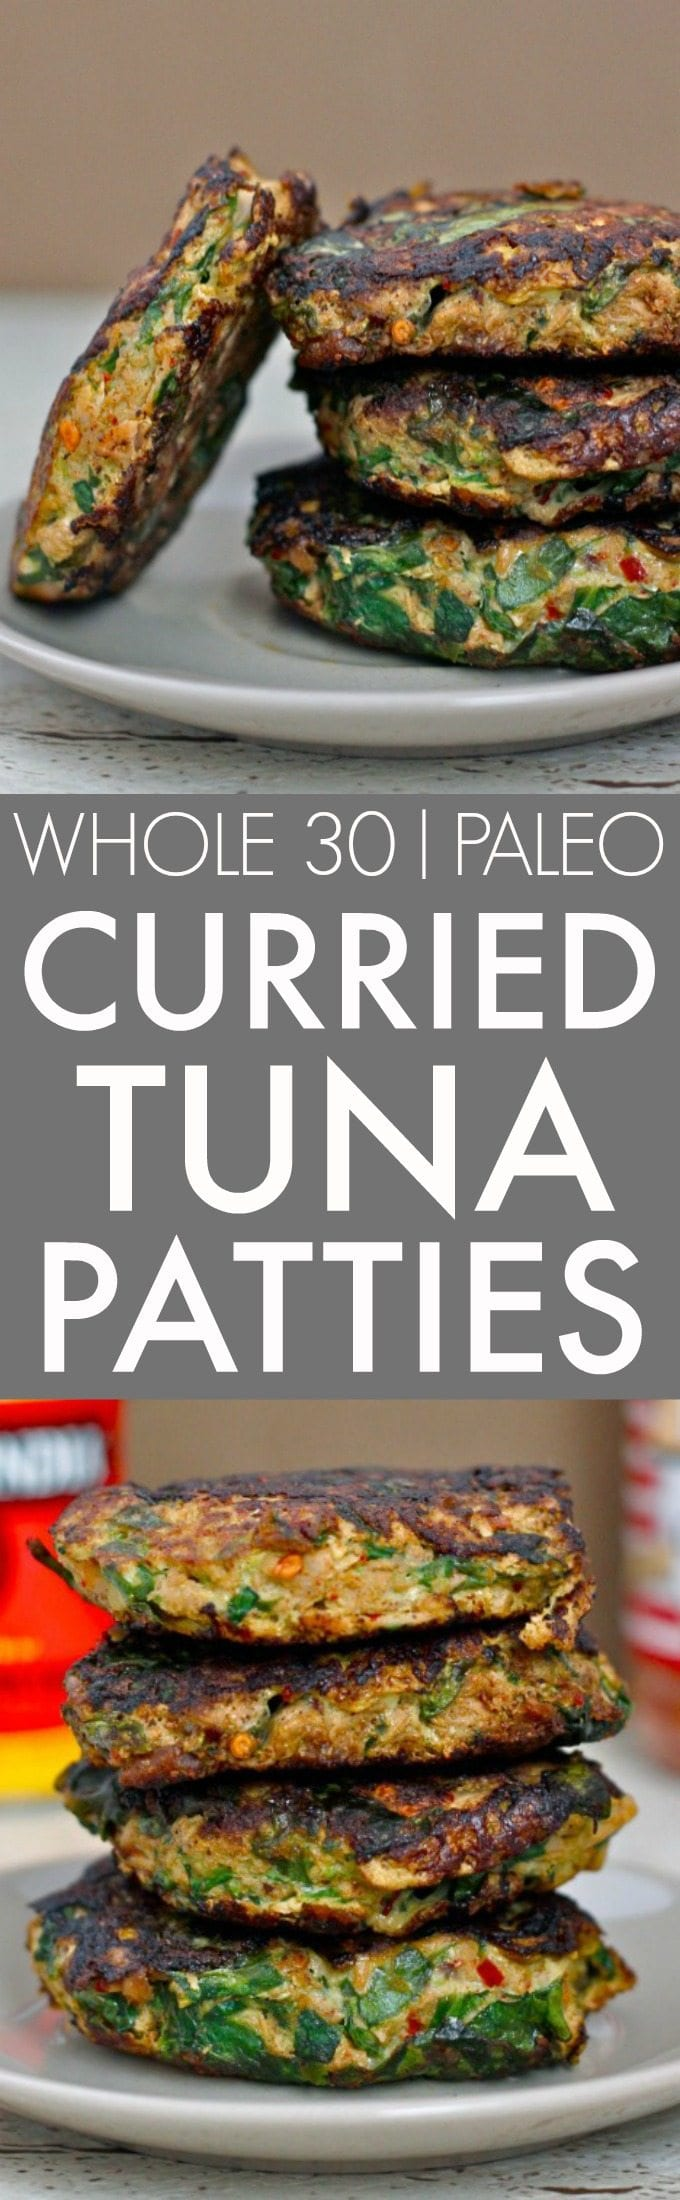 Easy and healthy tuna patties are whole30, paleo and keto friendly!